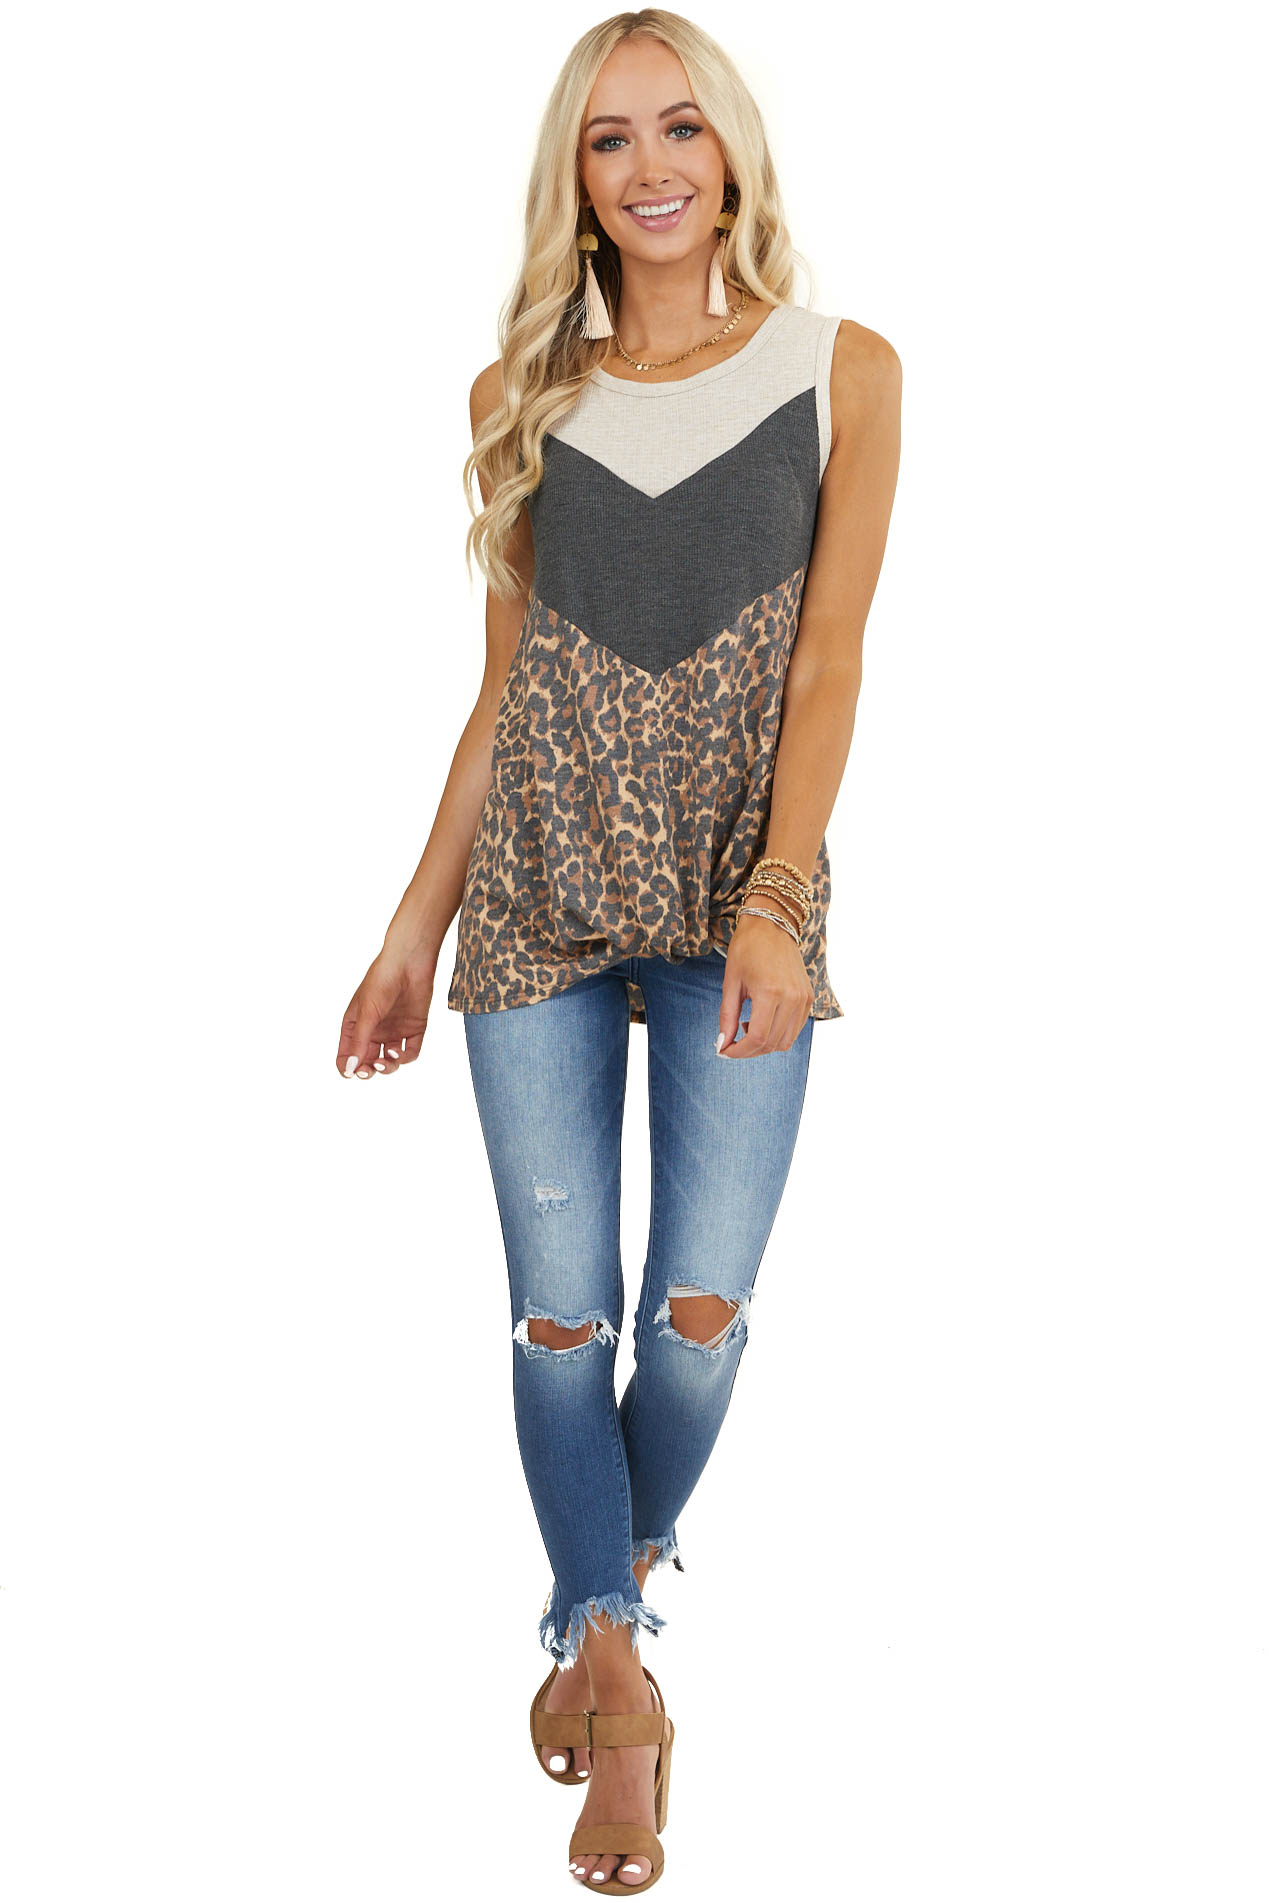 Oatmeal Charcoal and Leopard Print Chevron Striped Tank Top